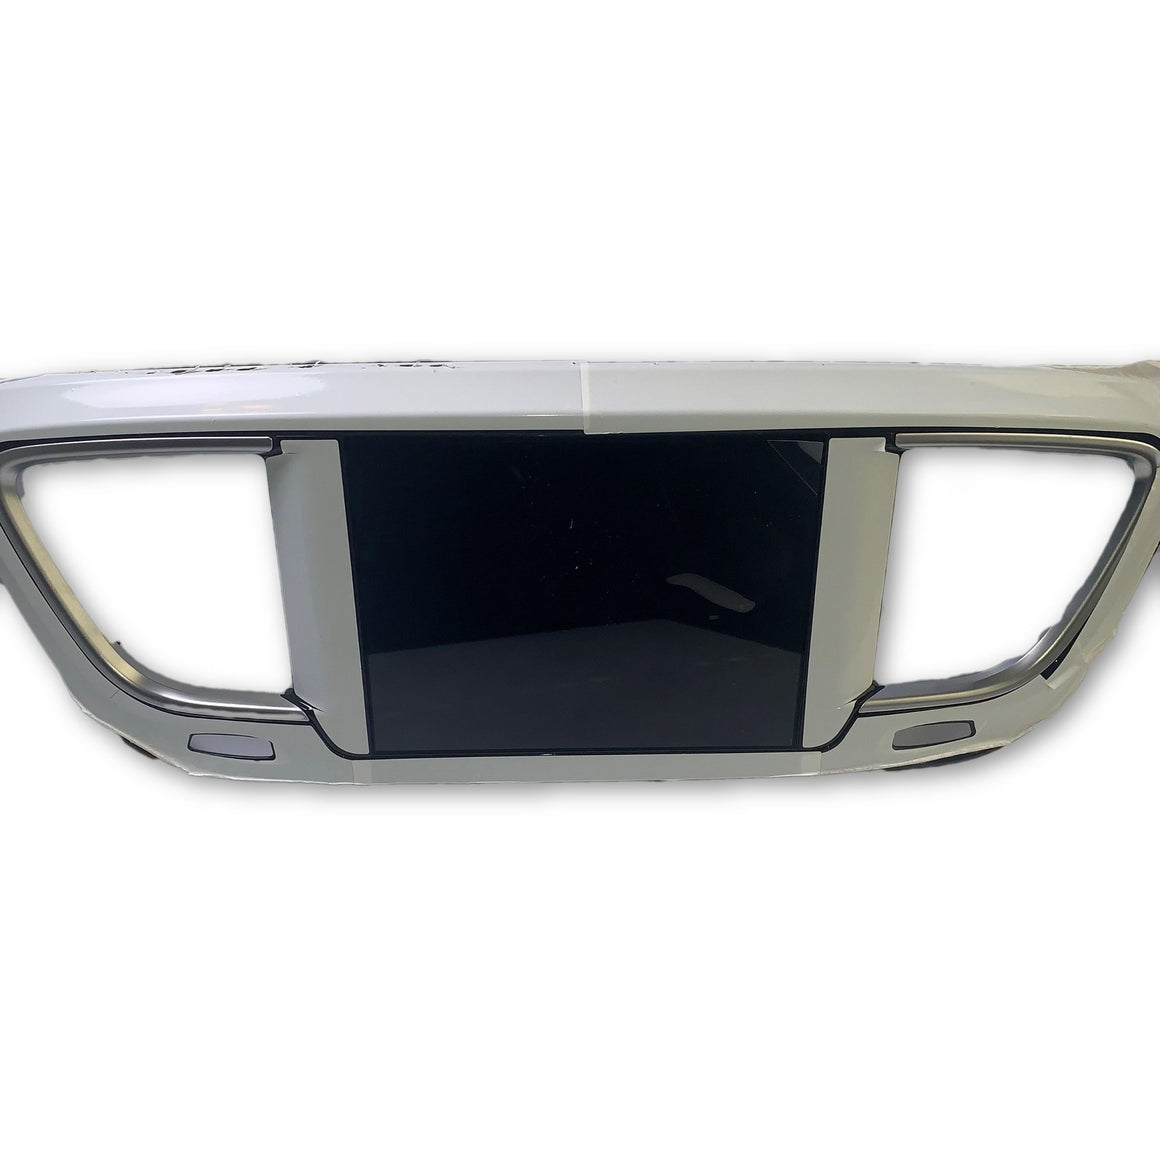 Chrysler Pacifica Uconnect 4 and 4C Nav 8.4 inch Screen Assembly (2017-2019) - Factory Radio Parts